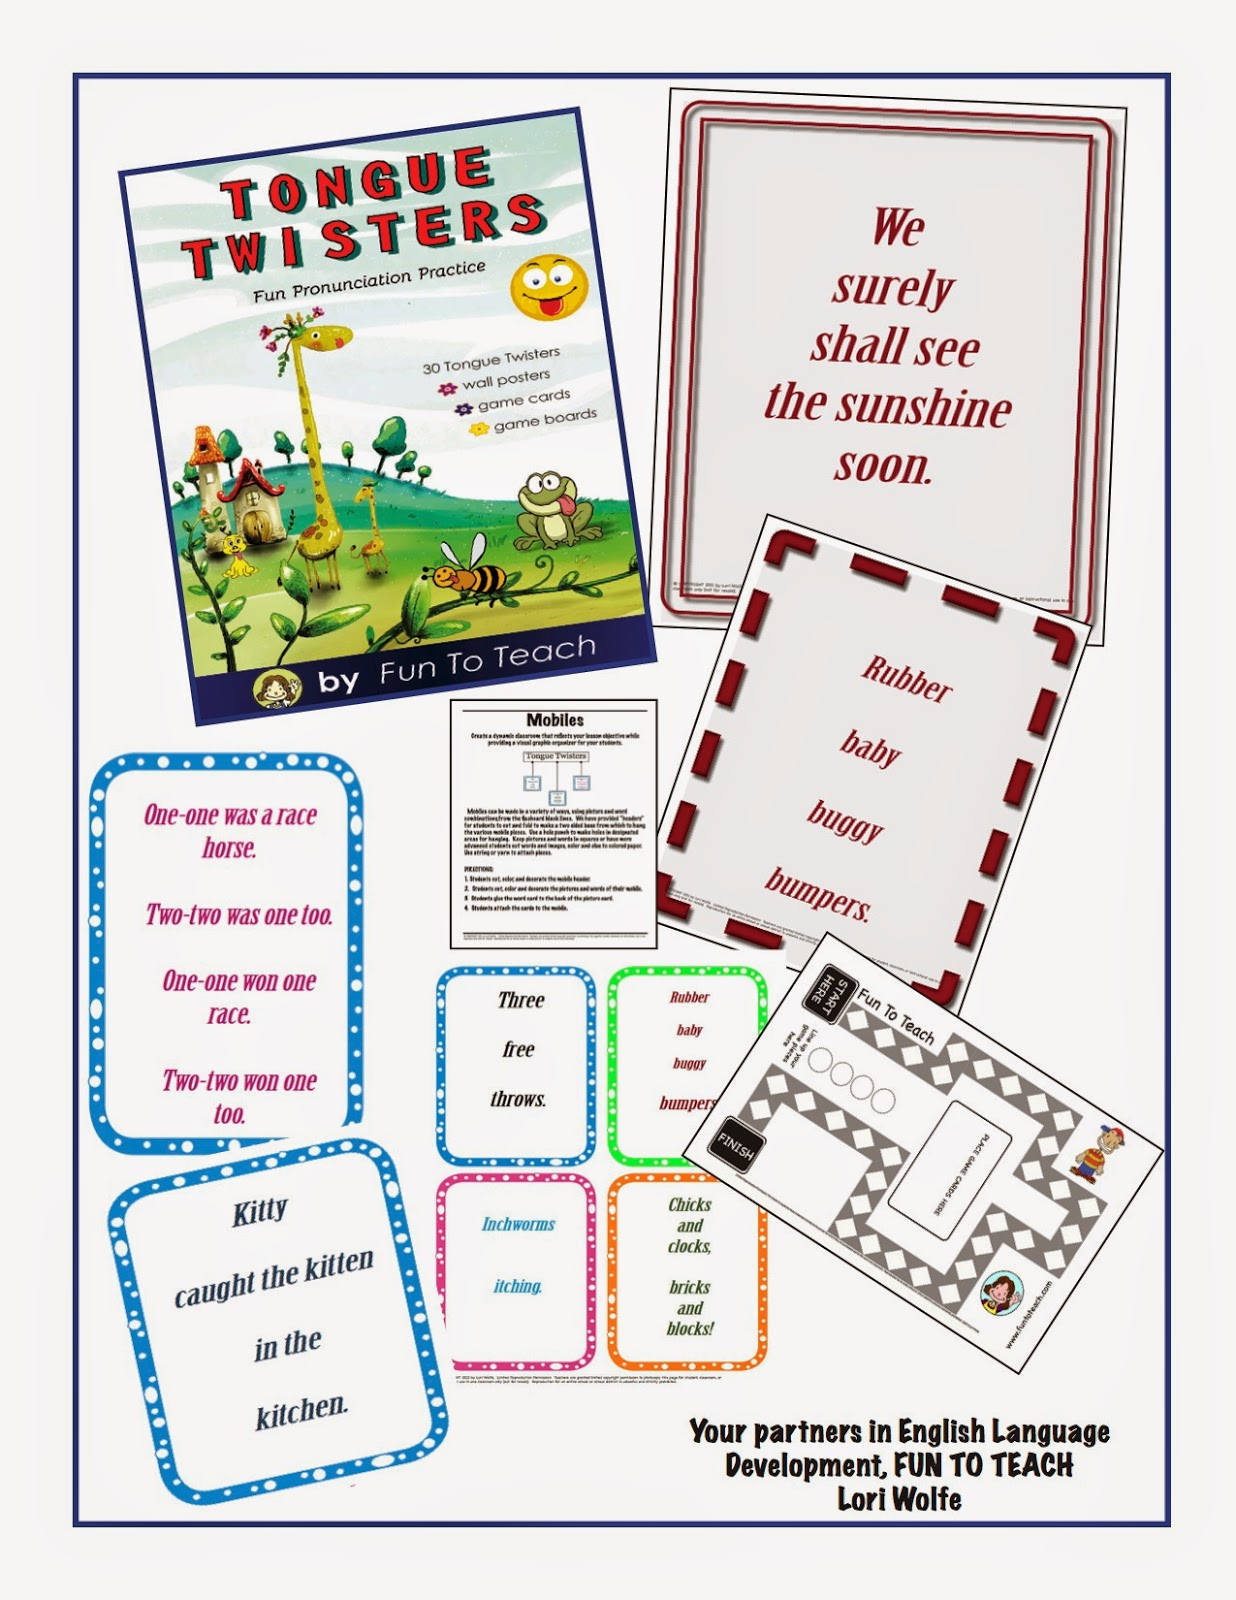 Tongue Twisters Pronunciation Made Fun!  This 48-page pronunciation unit has everything you need to teach students the correct pronunciation necessary to be academically successful in English. Tongue Twisters – Pronunciation Made Fun contains 30 traditional tongue twisters to help elementary students master English pronunciation!  Wall posters and game cards are provided for your students to practice the sounds of English with these engaging tongue twisters.   In addition, our activities and ideas provide fun and interest so your students learn through hands-on experiences. This unit is ready to go to work for you! Tongue Twisters – Pronunciation Made Fun has everything you need to teach students the correct pronunciation including black lines for the 30 traditional tongue twisters as wall posters, game/mobile cards and game boards Each of the 30 tongue twisters has its own wall poster and game card.  Practice English pronunciation with fun activities and game boards.  •WORD WALL CARDS •GAME BOARDS •GAME CARDS  Each tongue twister is printed on an individual wall poster (8 x 11 ½) and game/flash card. Simply copy, cut, and use.  Use this great English pronunciation package for kindergarten through 6th graders.  Perfect for second language learners and speech students!  See all our great math and grammar games at www.funtoteach.com.